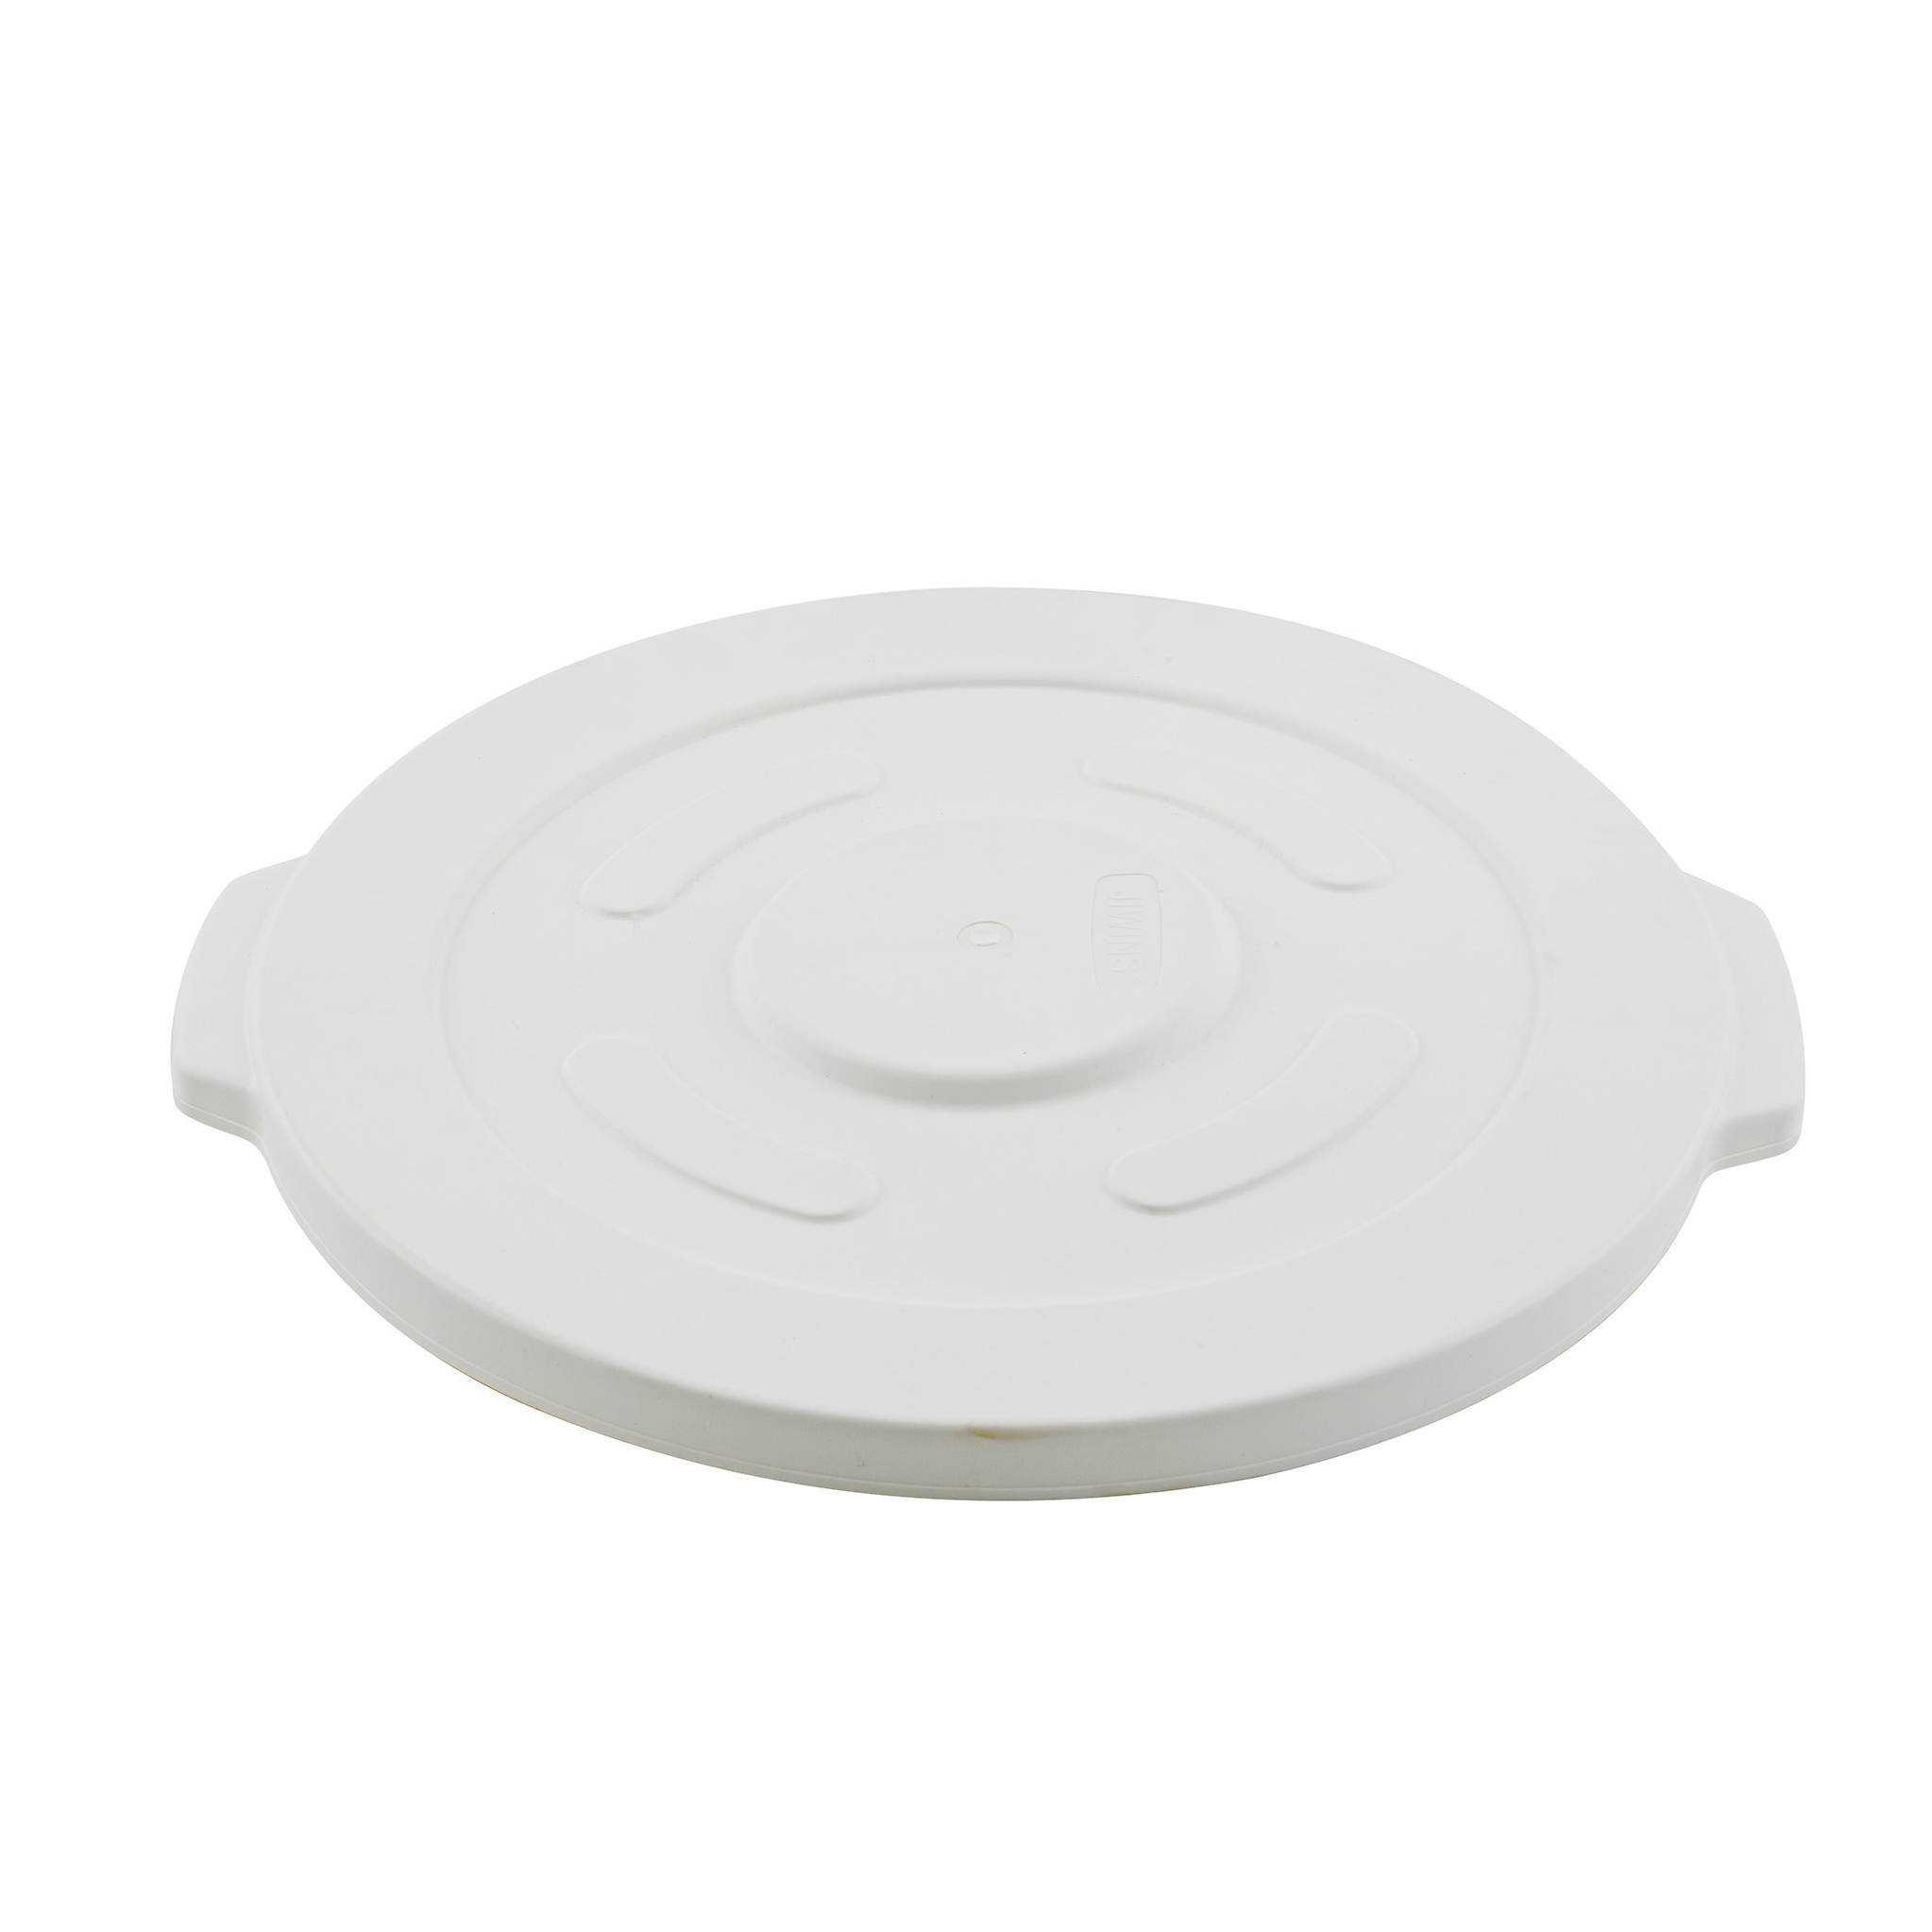 Winco FCW-20L trash receptacle lid / top